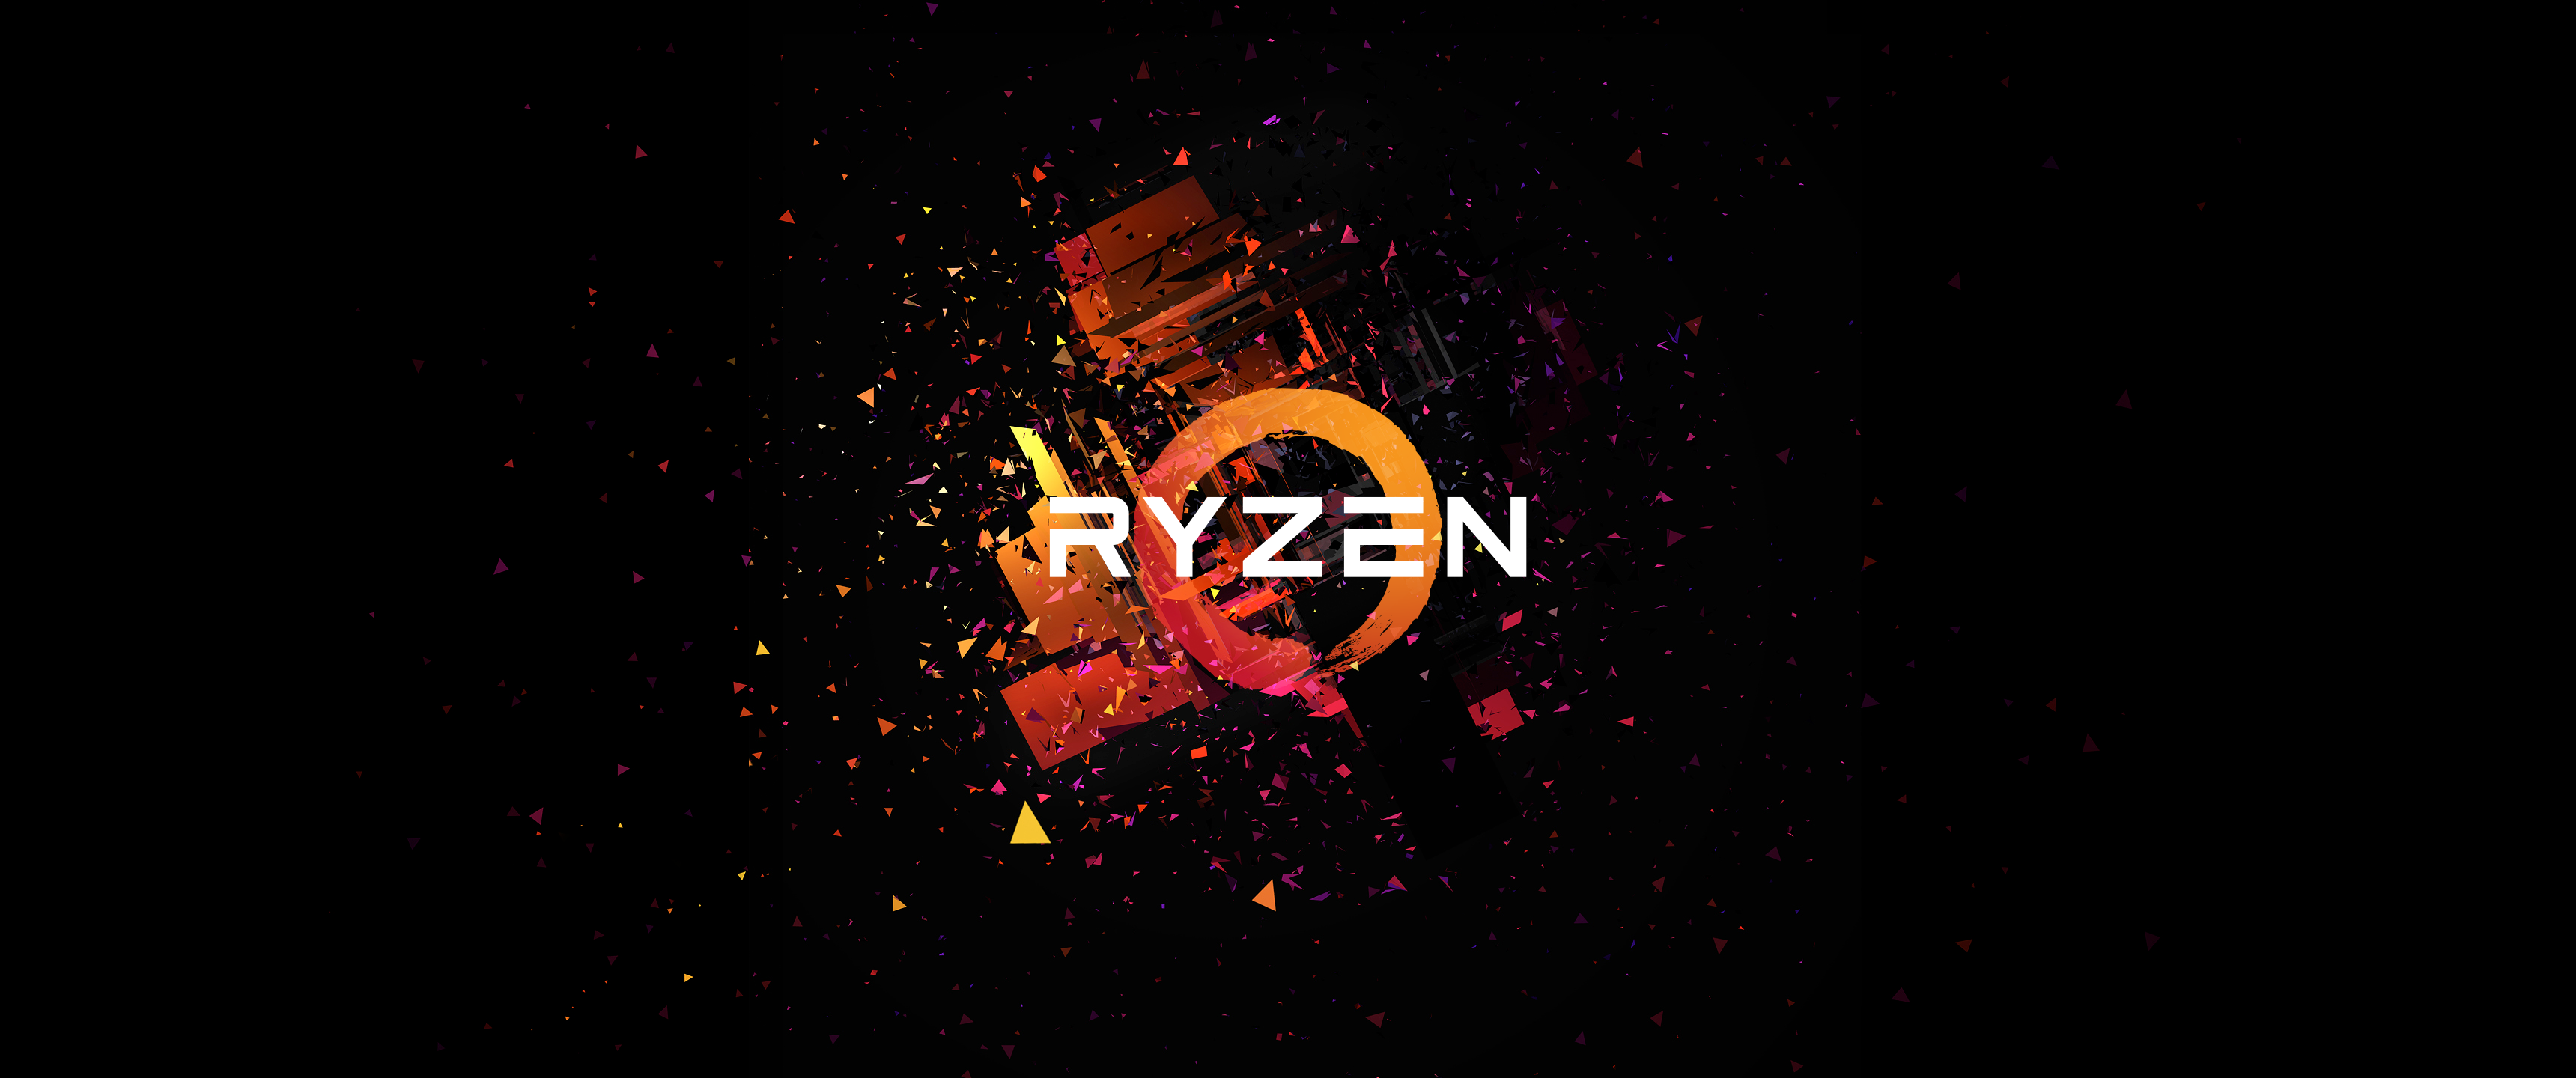 AMD Ryzen Wallpapers - Top Free AMD